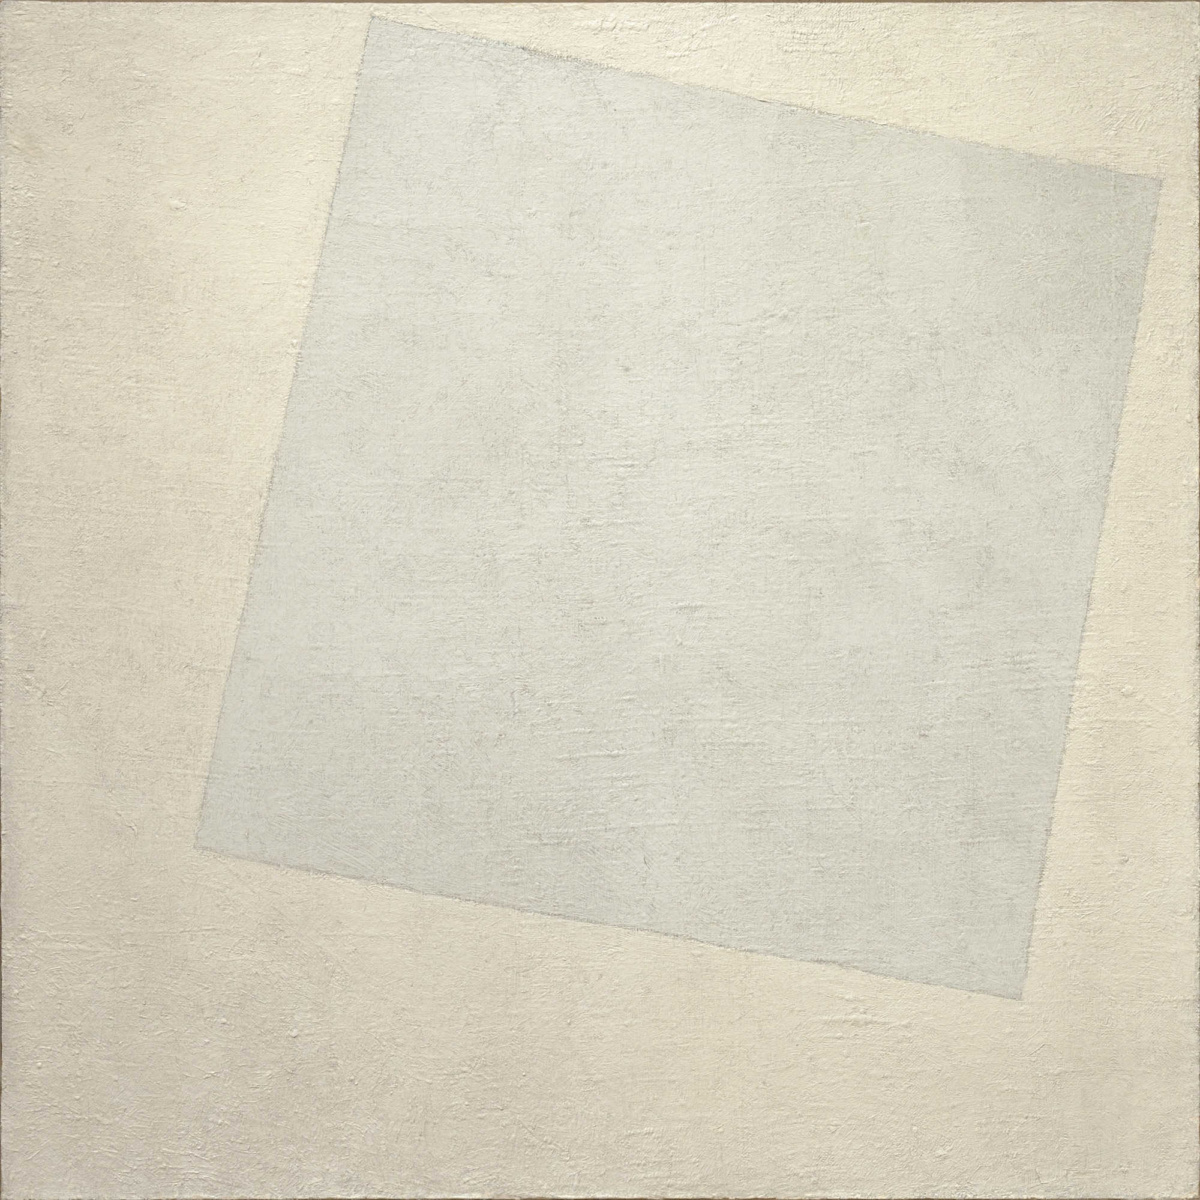 White on White (Malevich, 1918)